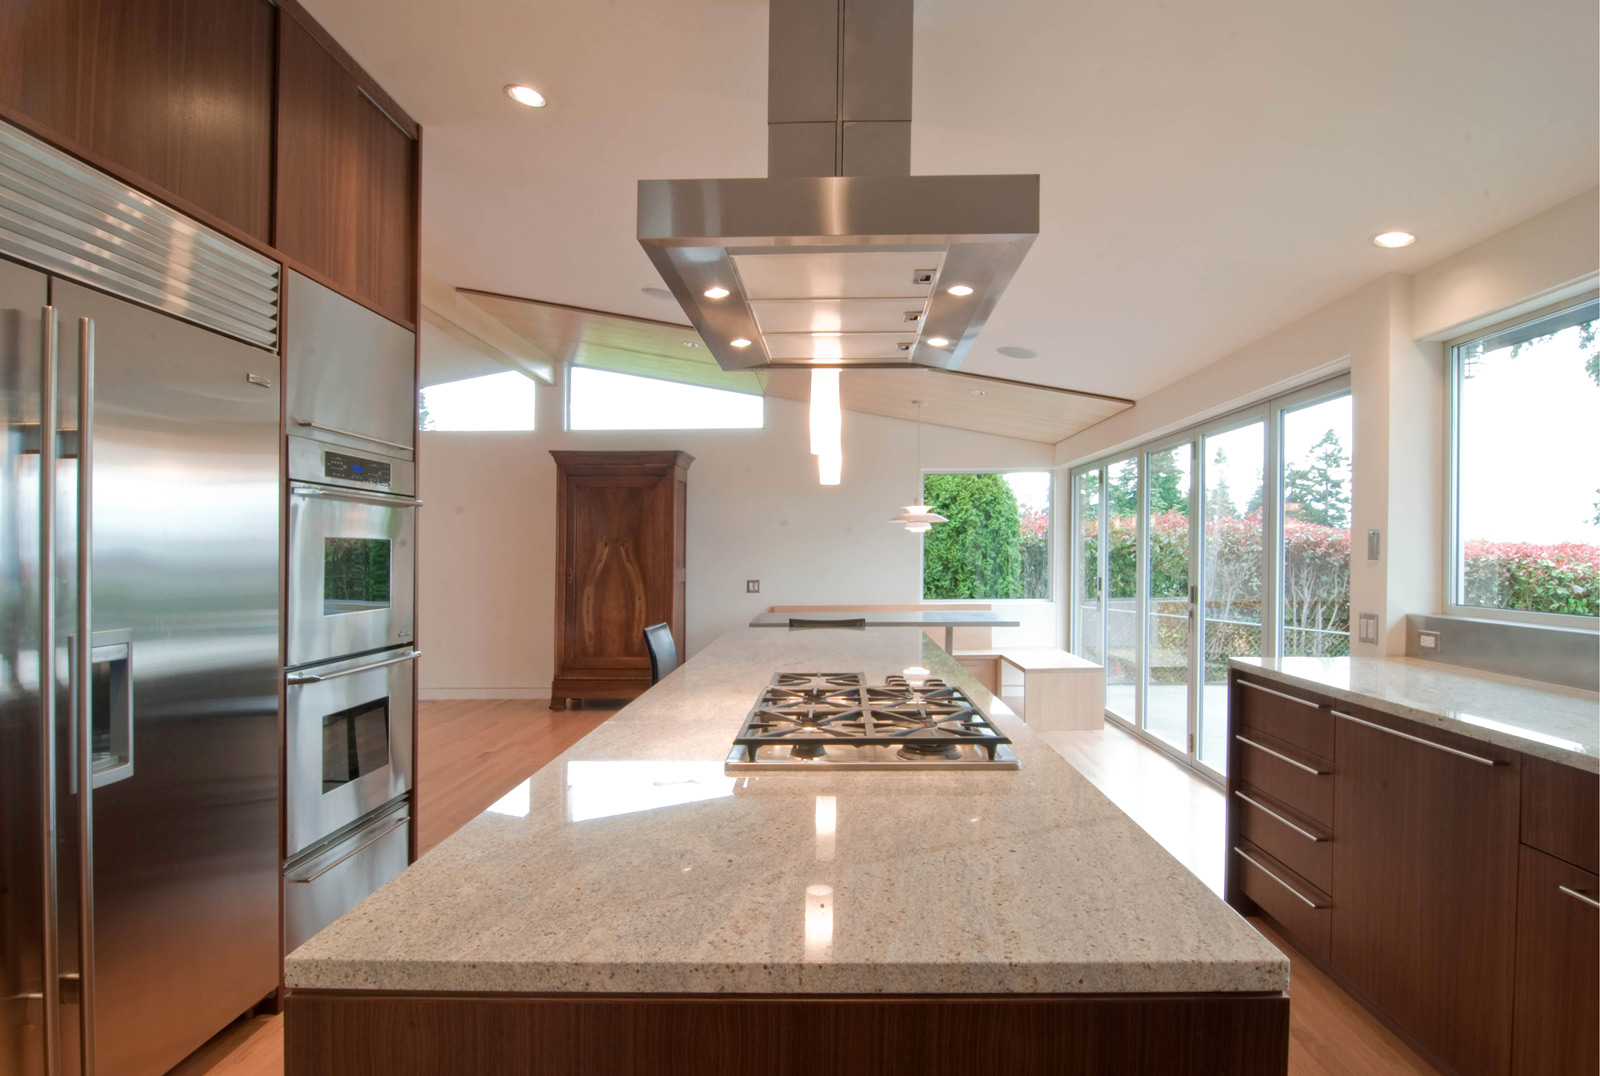 design strategies for kitchen hood venting | build blog